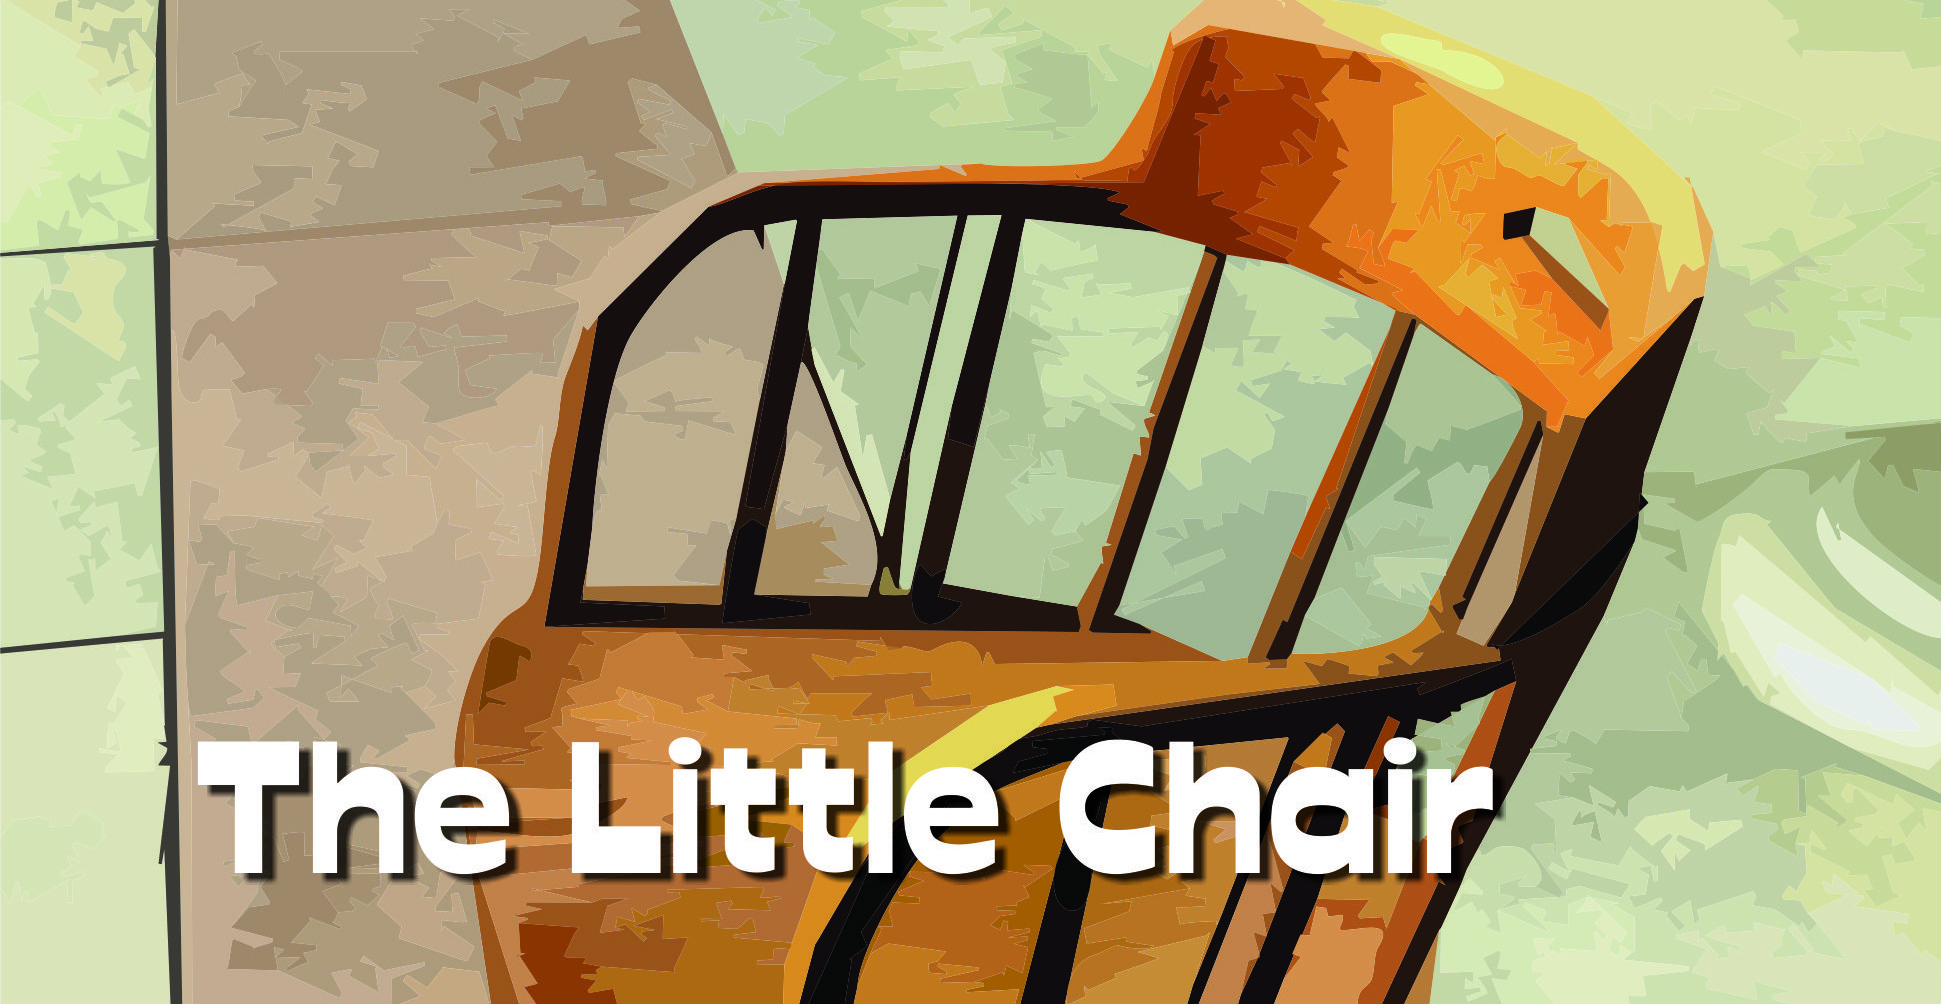 Artwork of a little wooden chair under title of episode